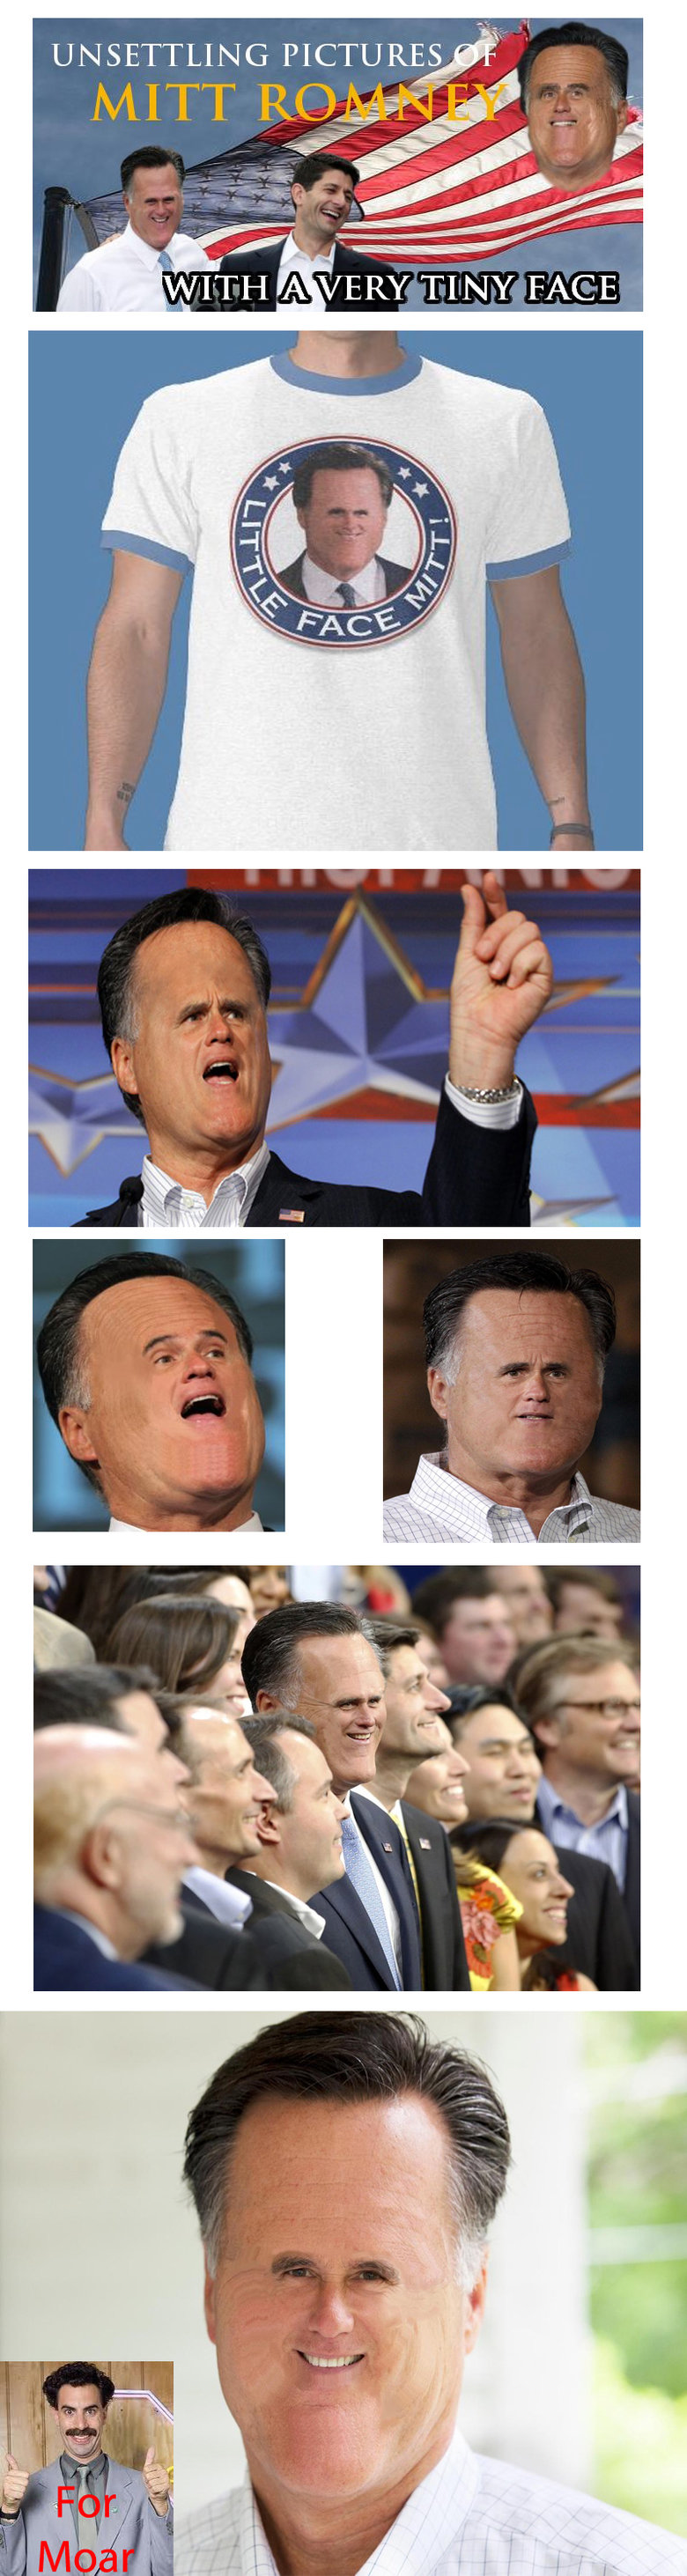 Little Face Mitt Has A Little Face. Oh little face Mitt y u so silly?. UNSETTLING ,. Mott Romnoy